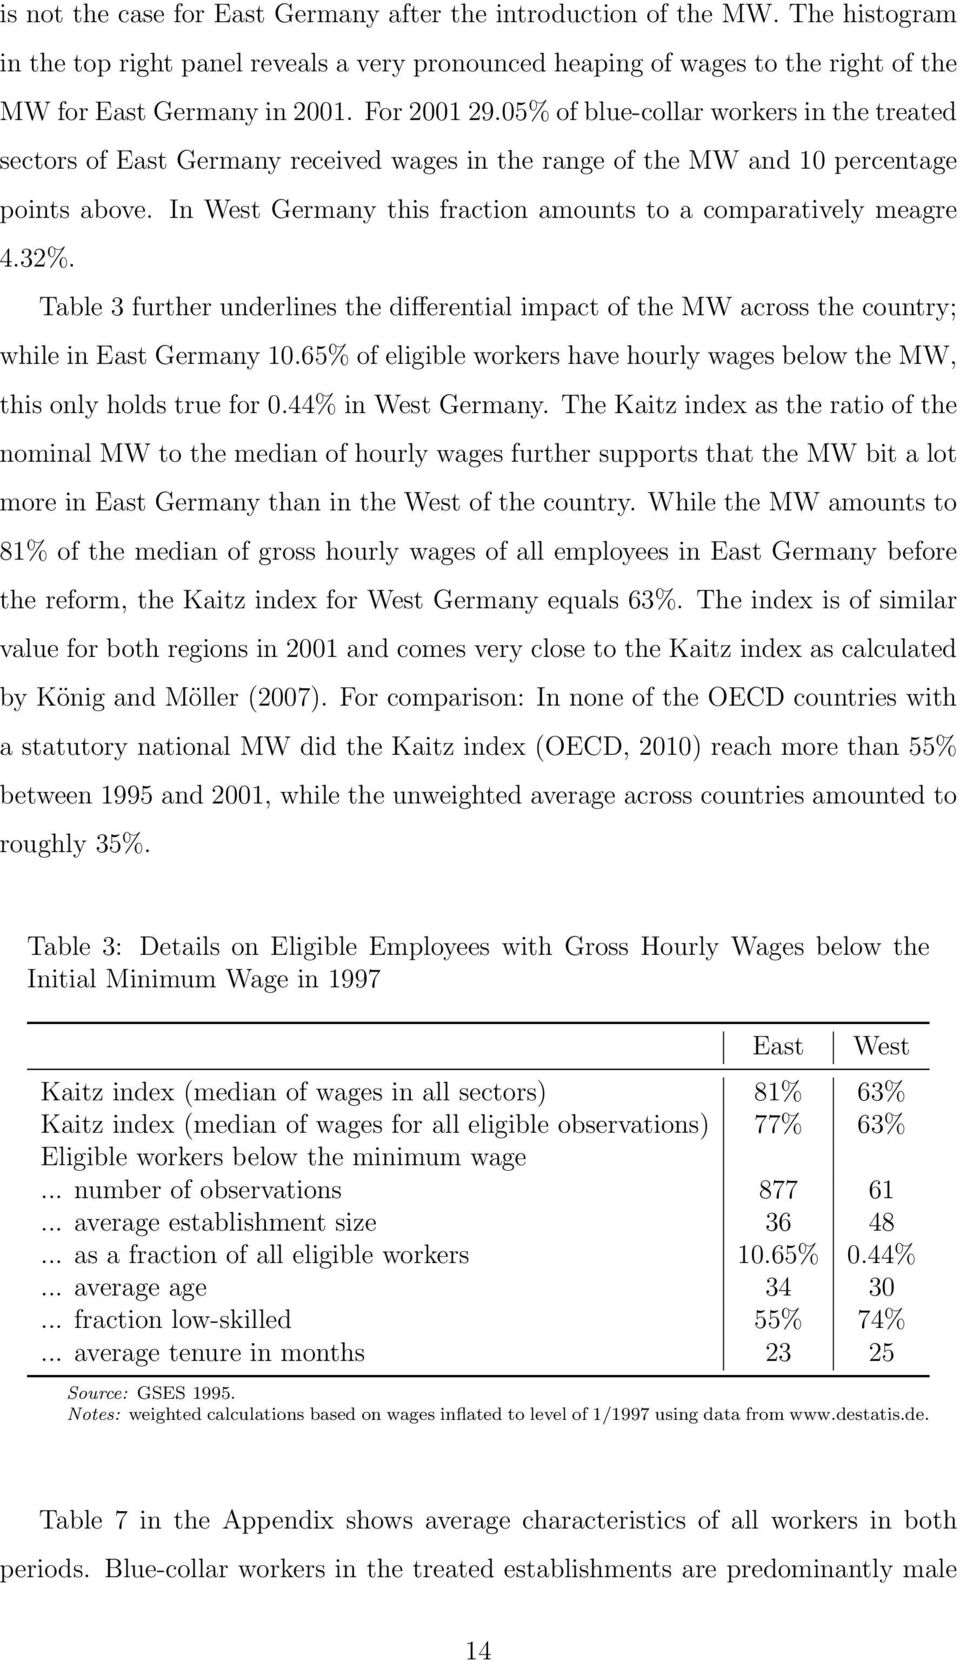 In West Germany this fraction amounts to a comparatively meagre 4.32%. Table 3 further underlines the differential impact of the MW across the country; while in East Germany 10.